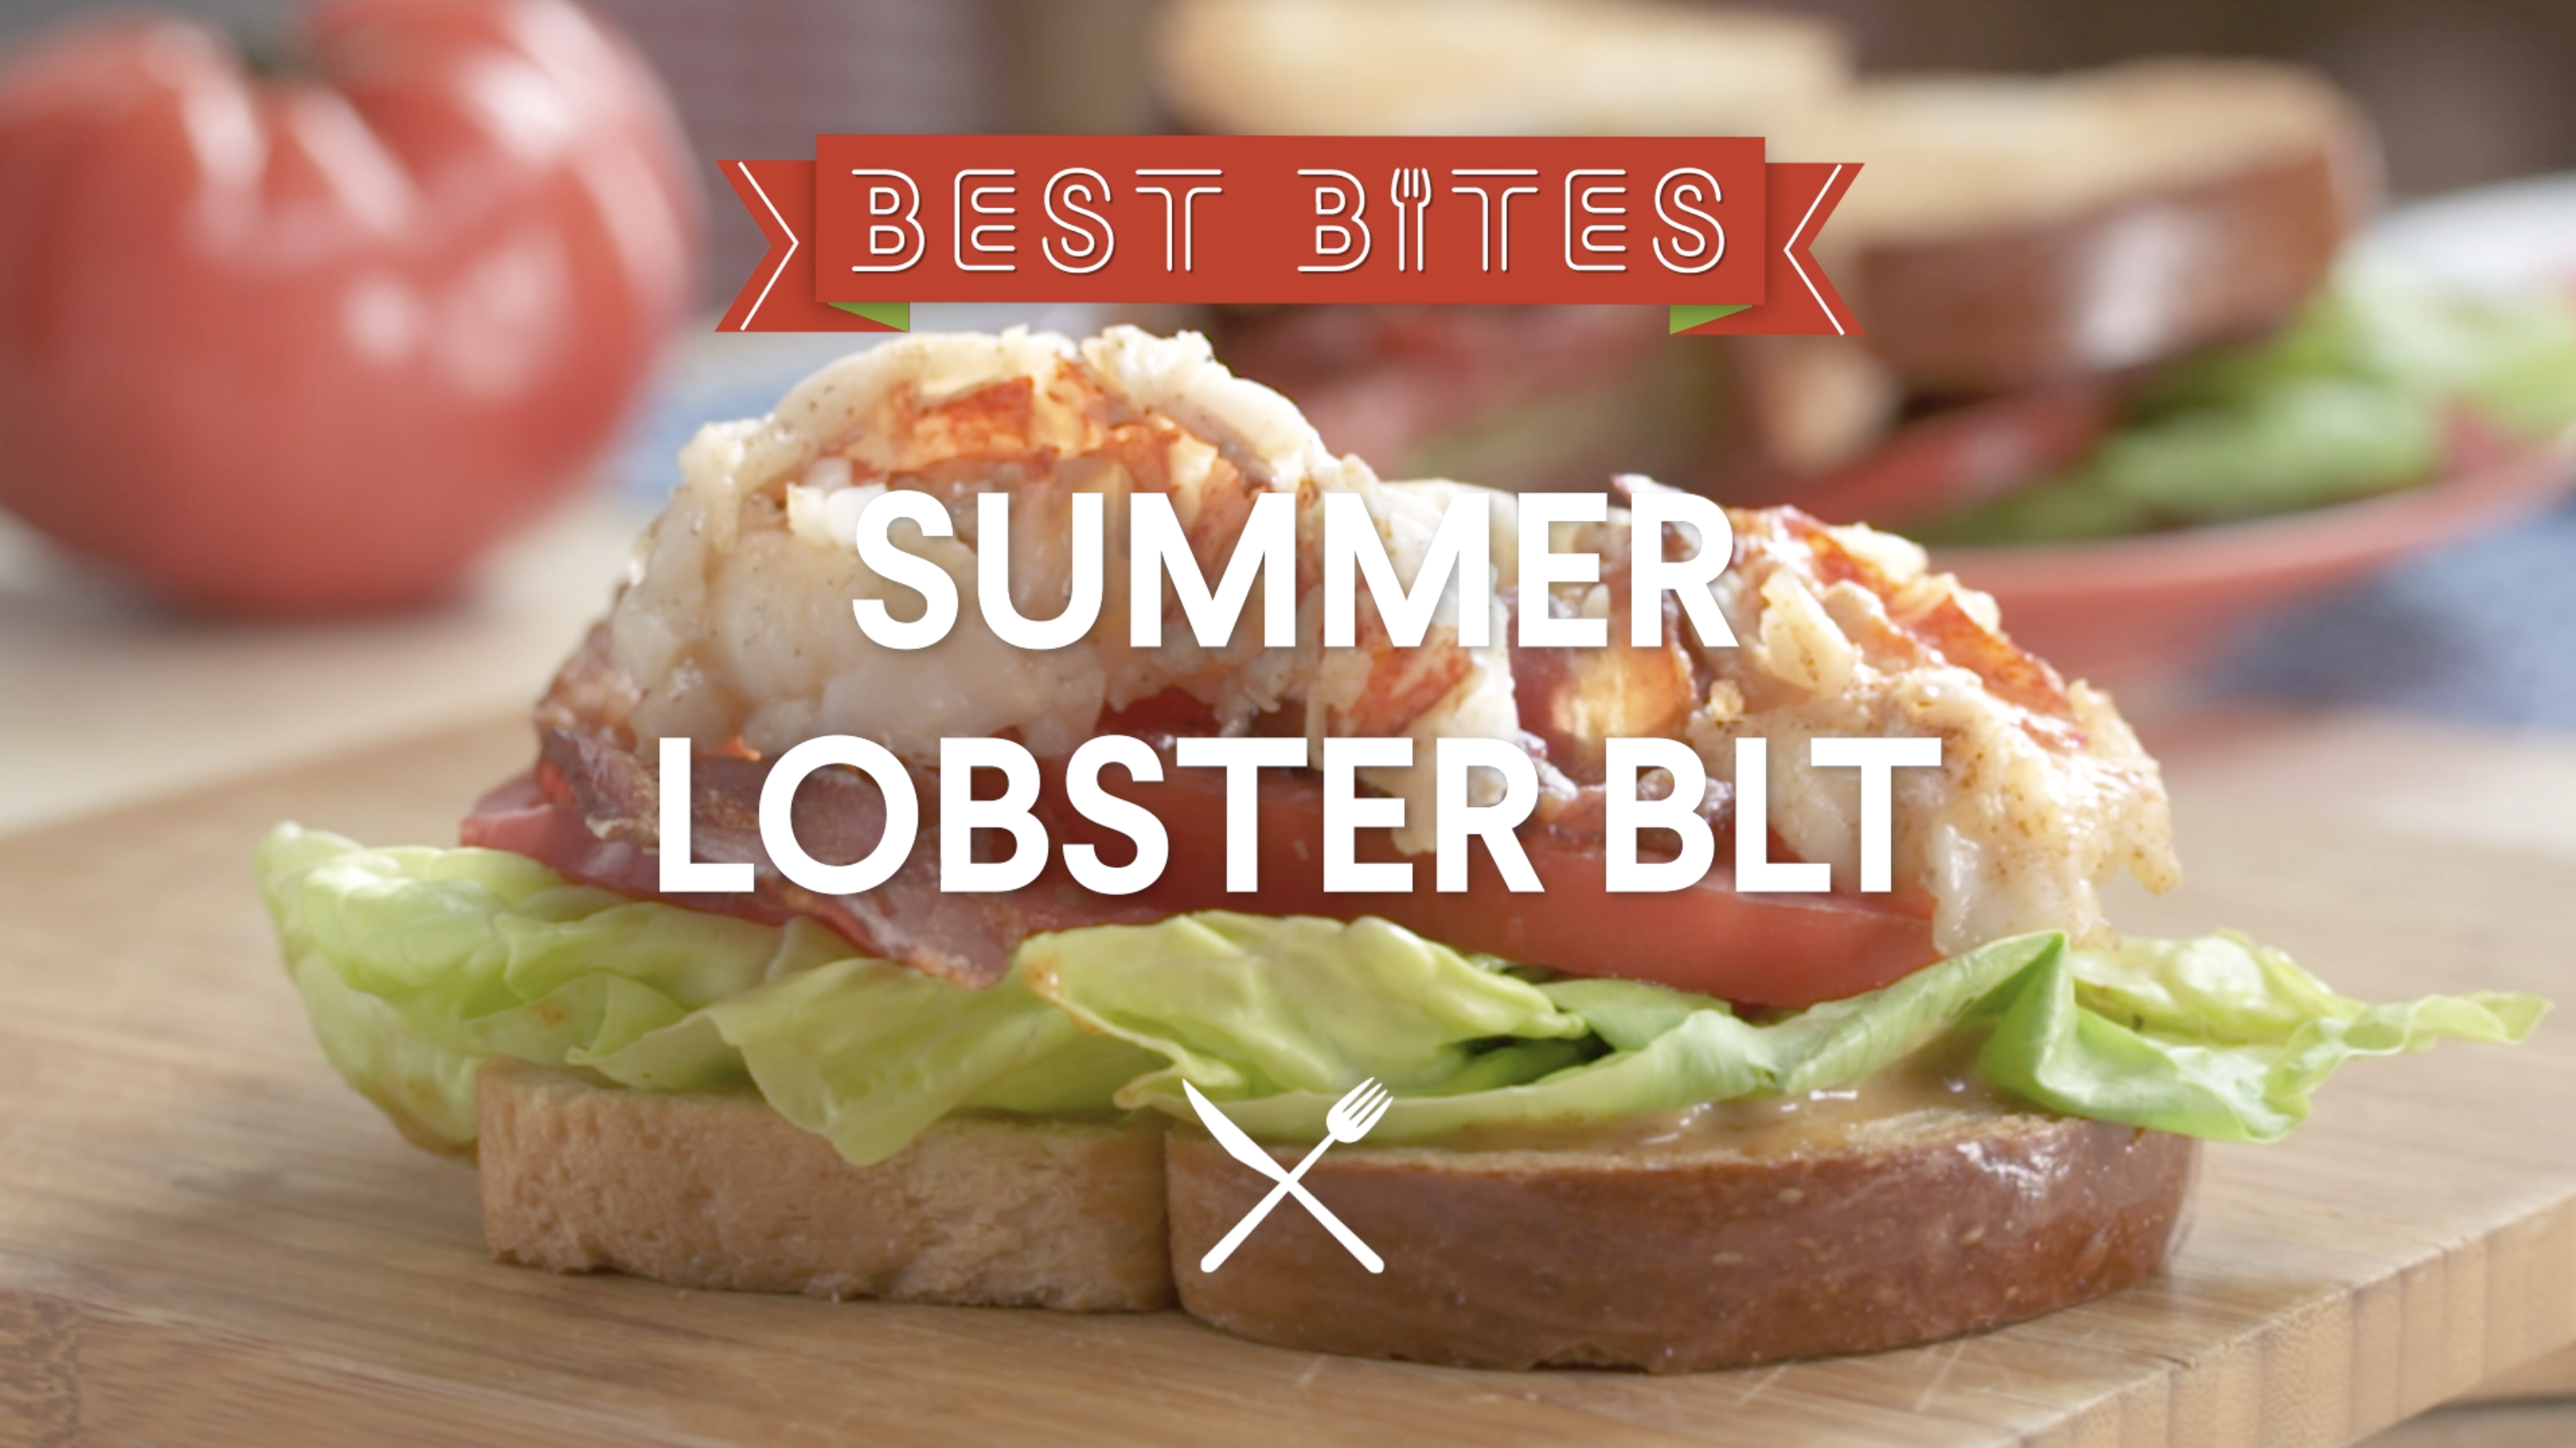 Revamp your BLT sandwich with lobster tail and sweet and smoky mayo